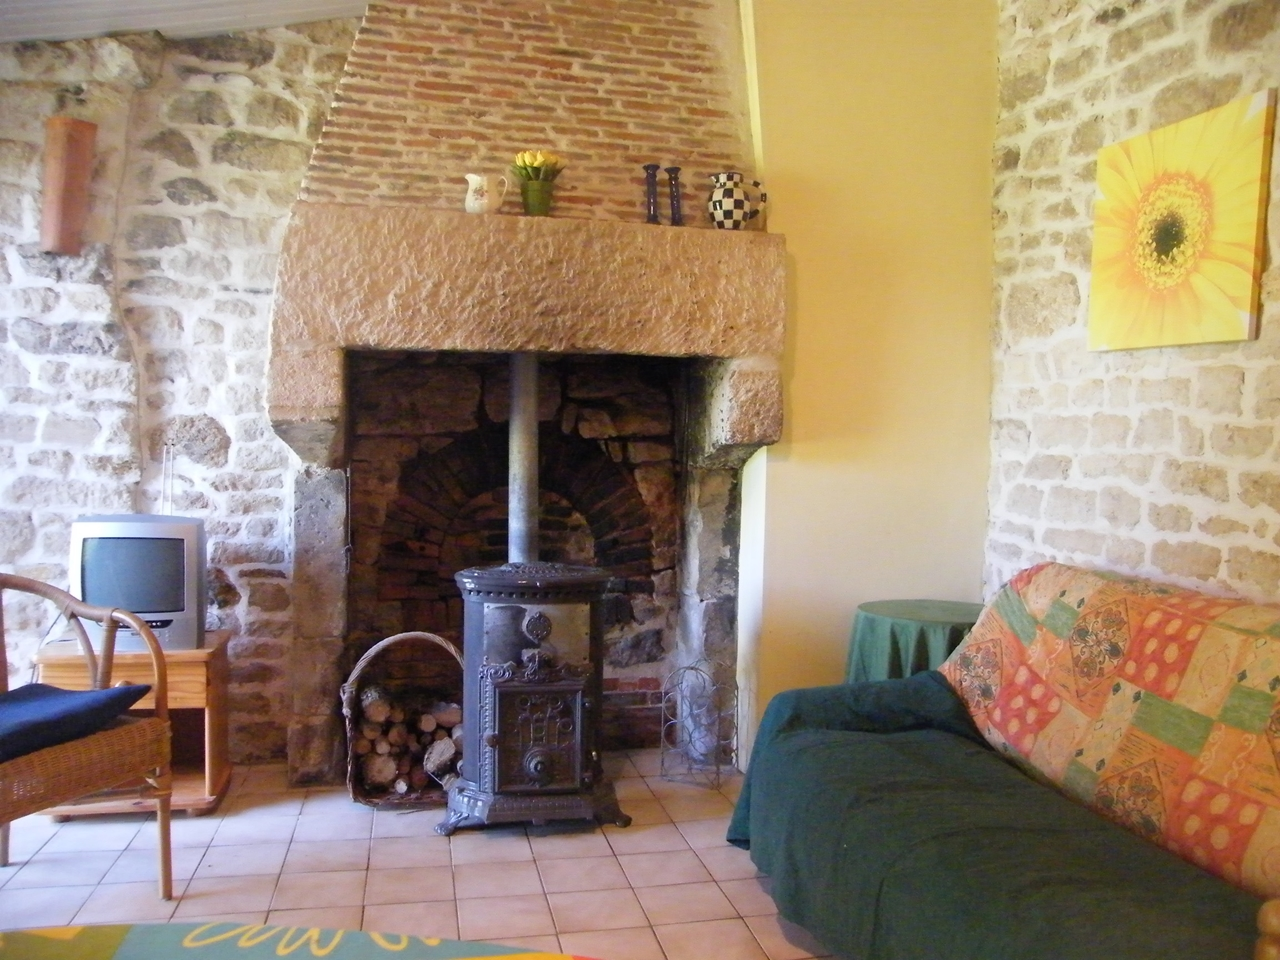 Le Jardin Clos - the old bread oven in the salon